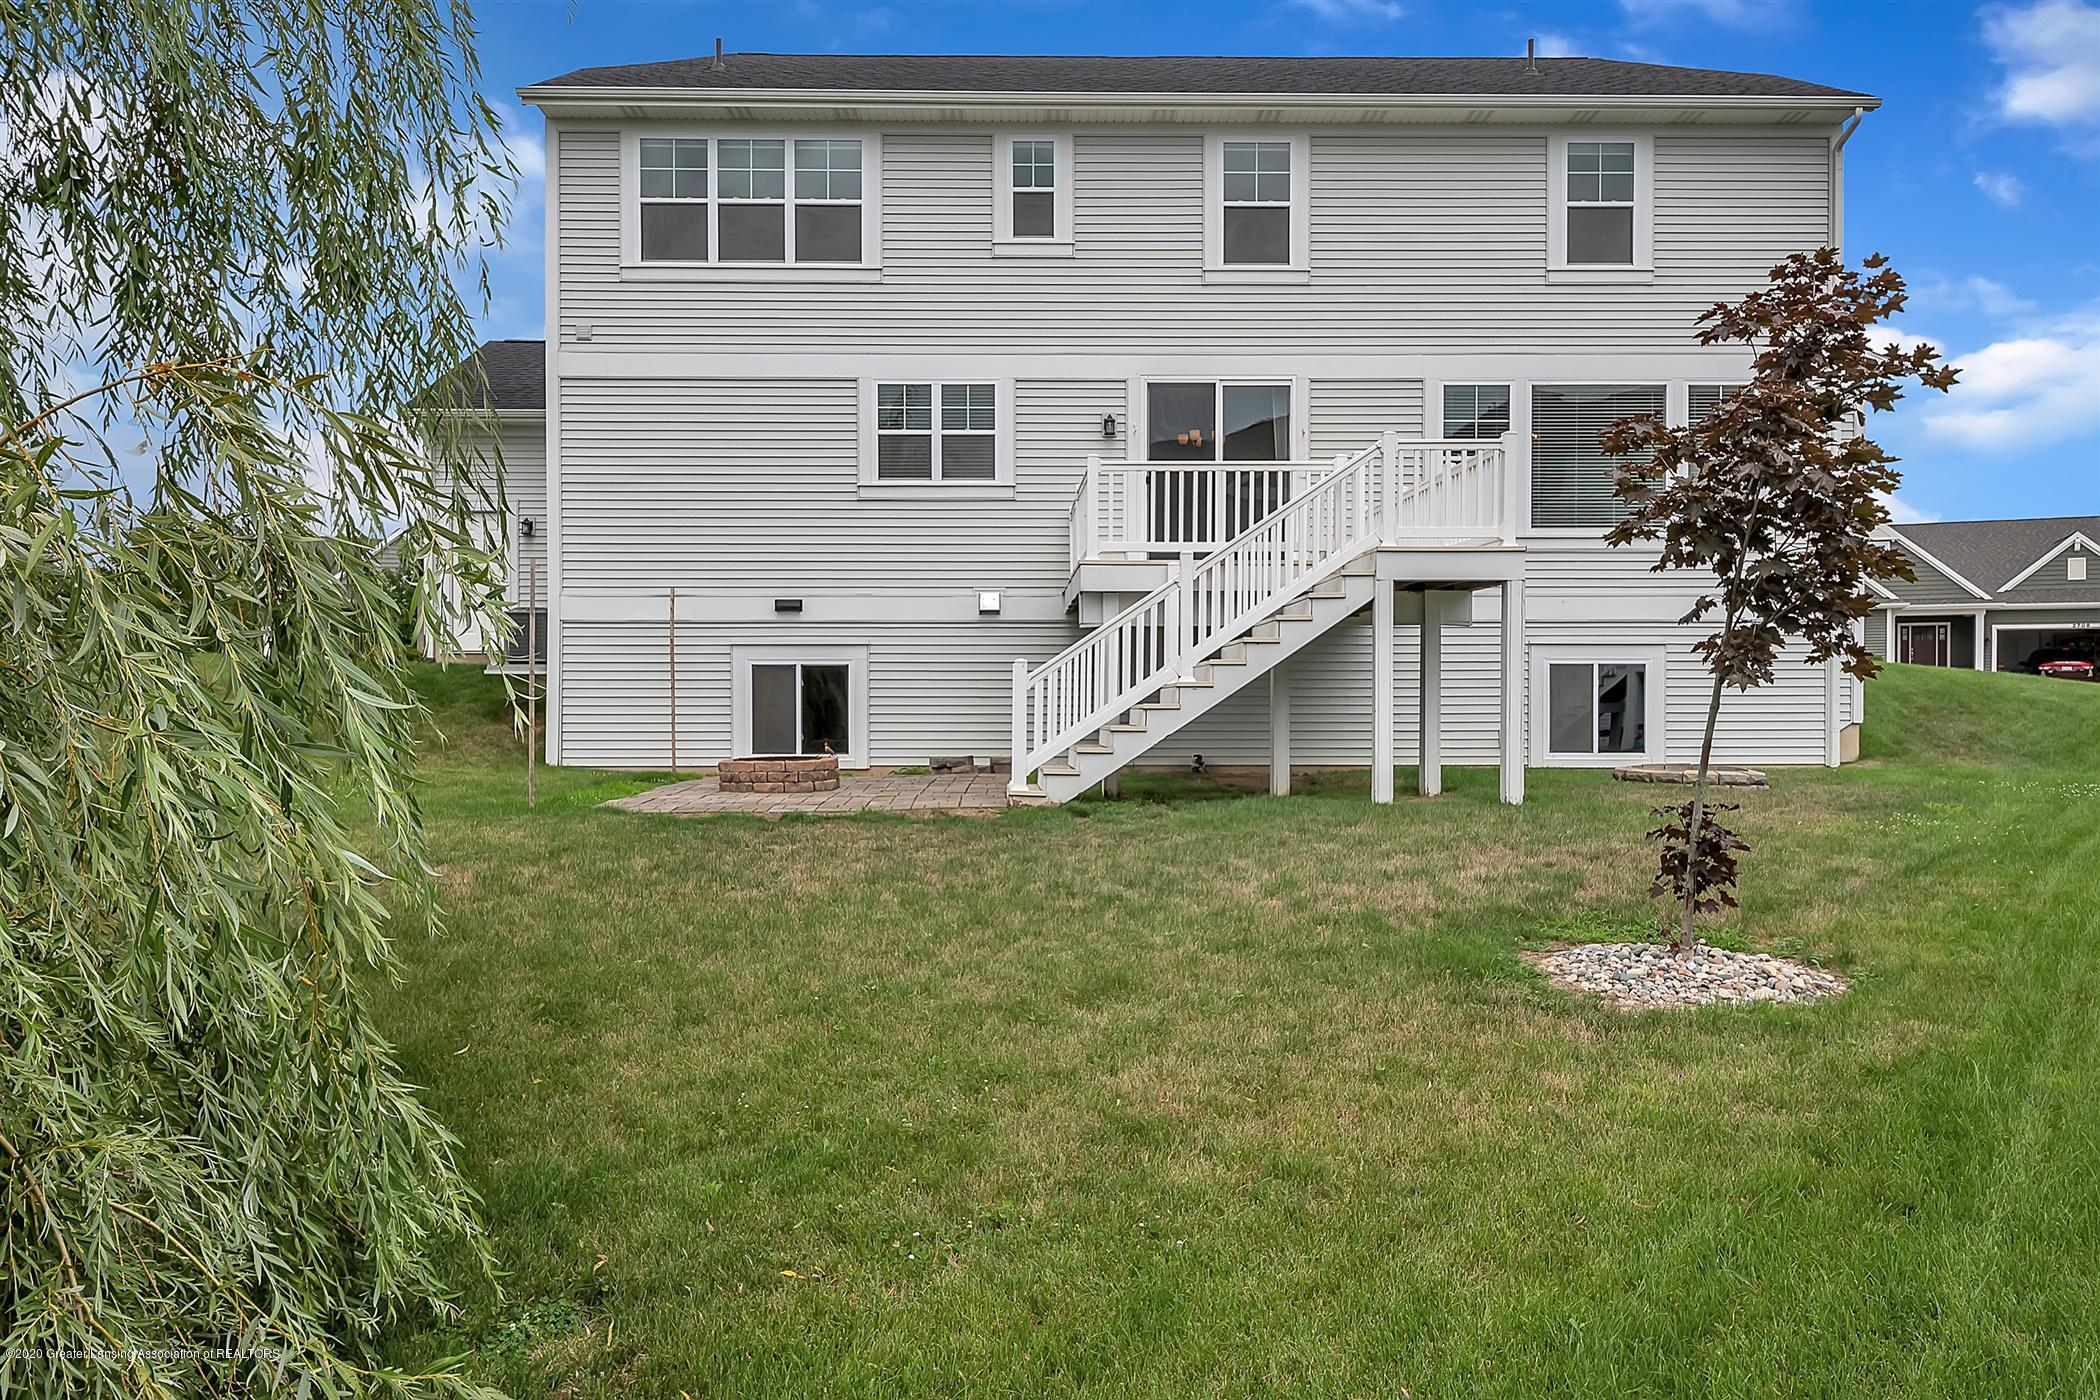 2715 Kittansett Dr - 52-2715-Kittansett-Dr-WindowStill-R - 53